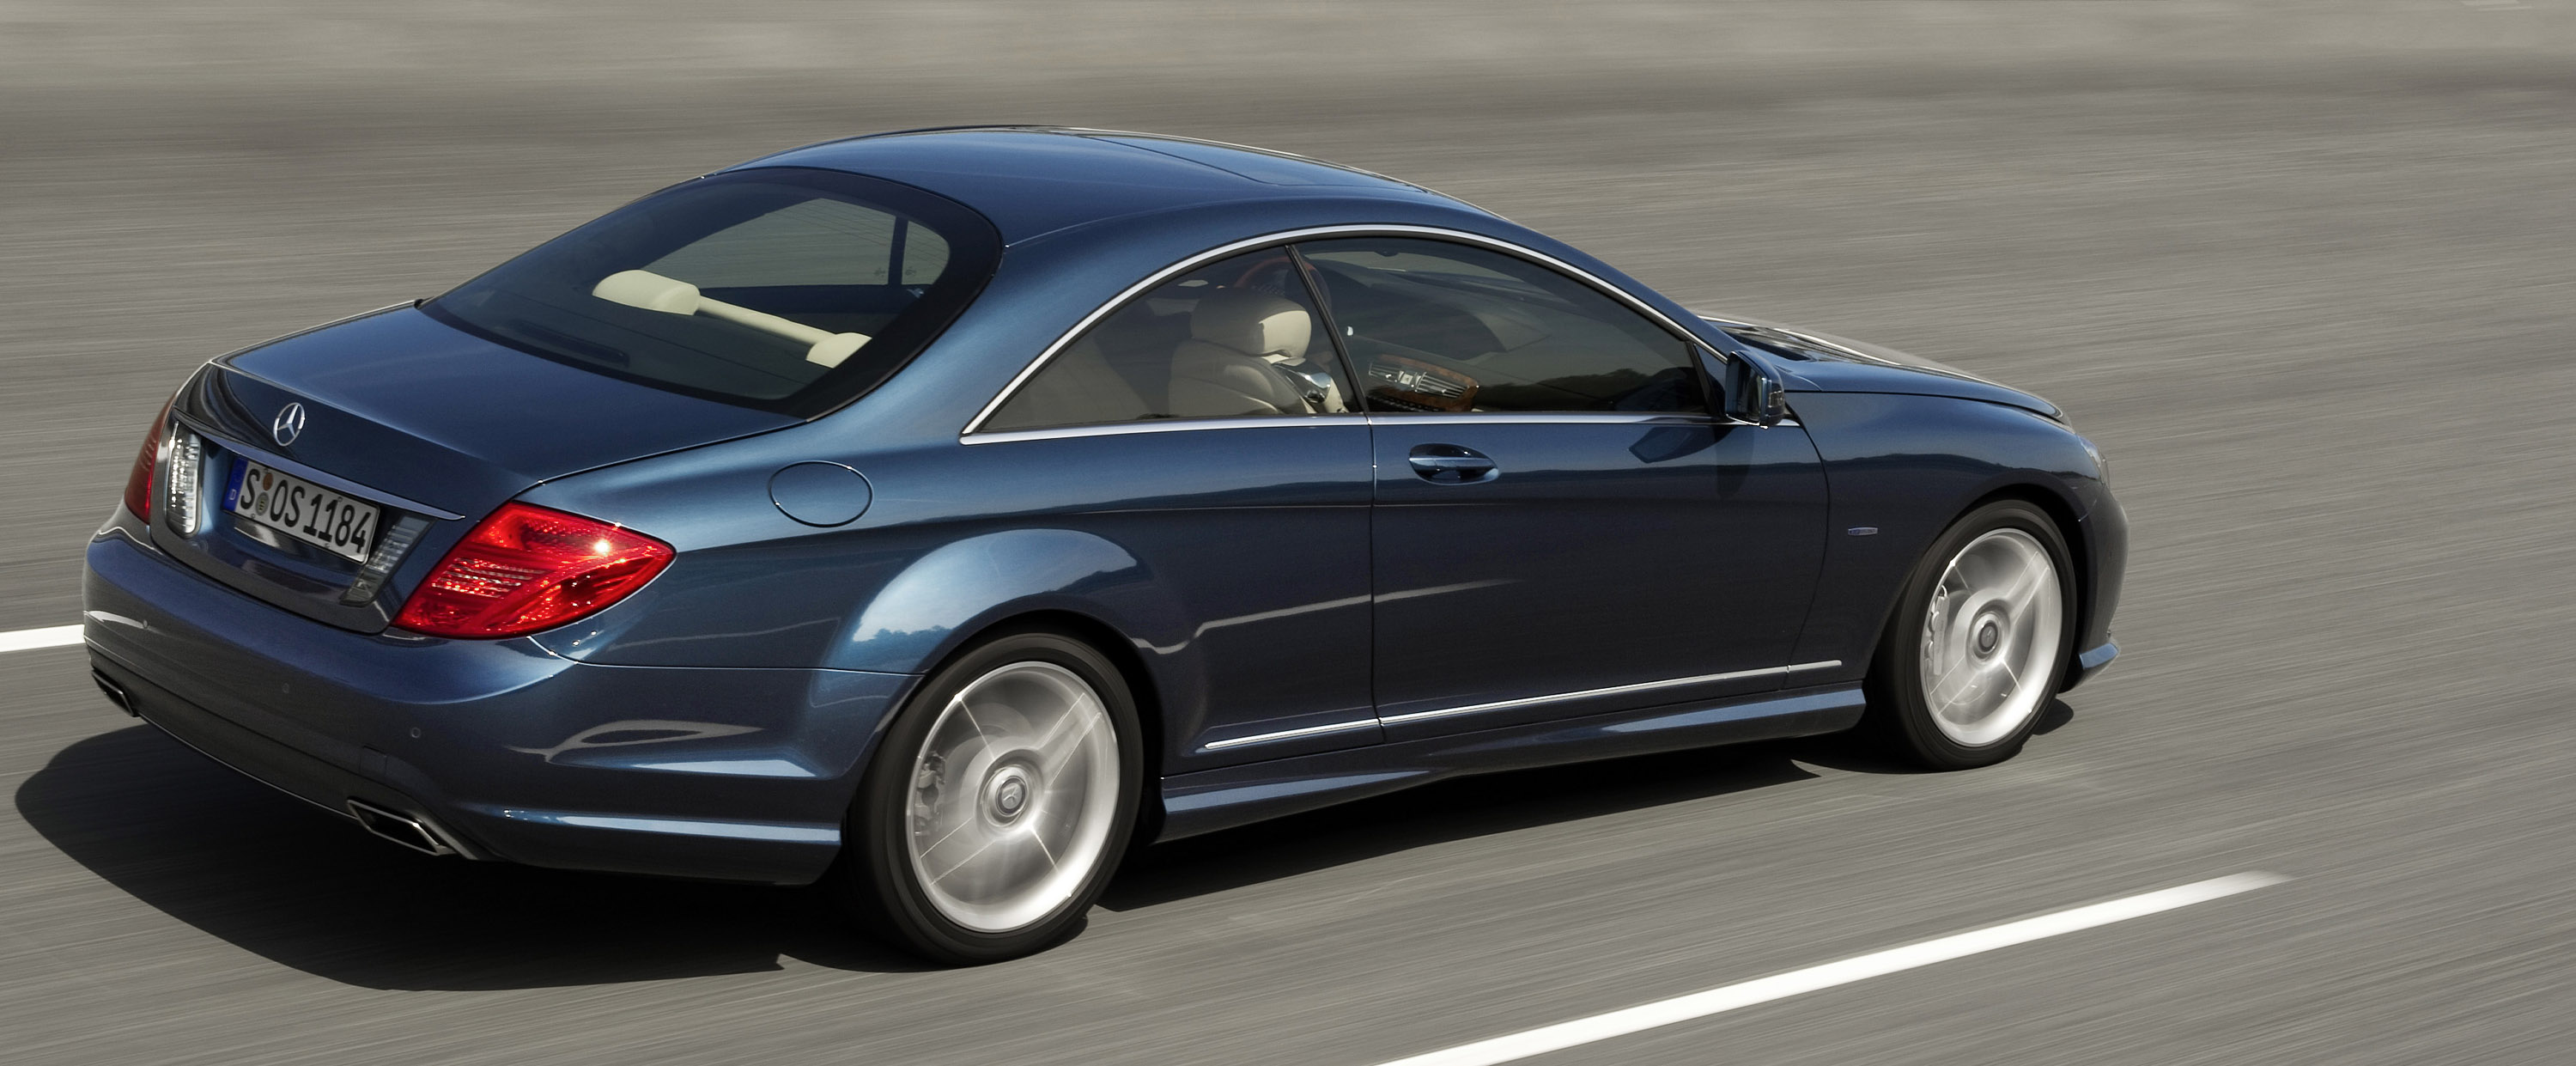 Beautiful ... 2011 Mercedes Benz CL Class, ...